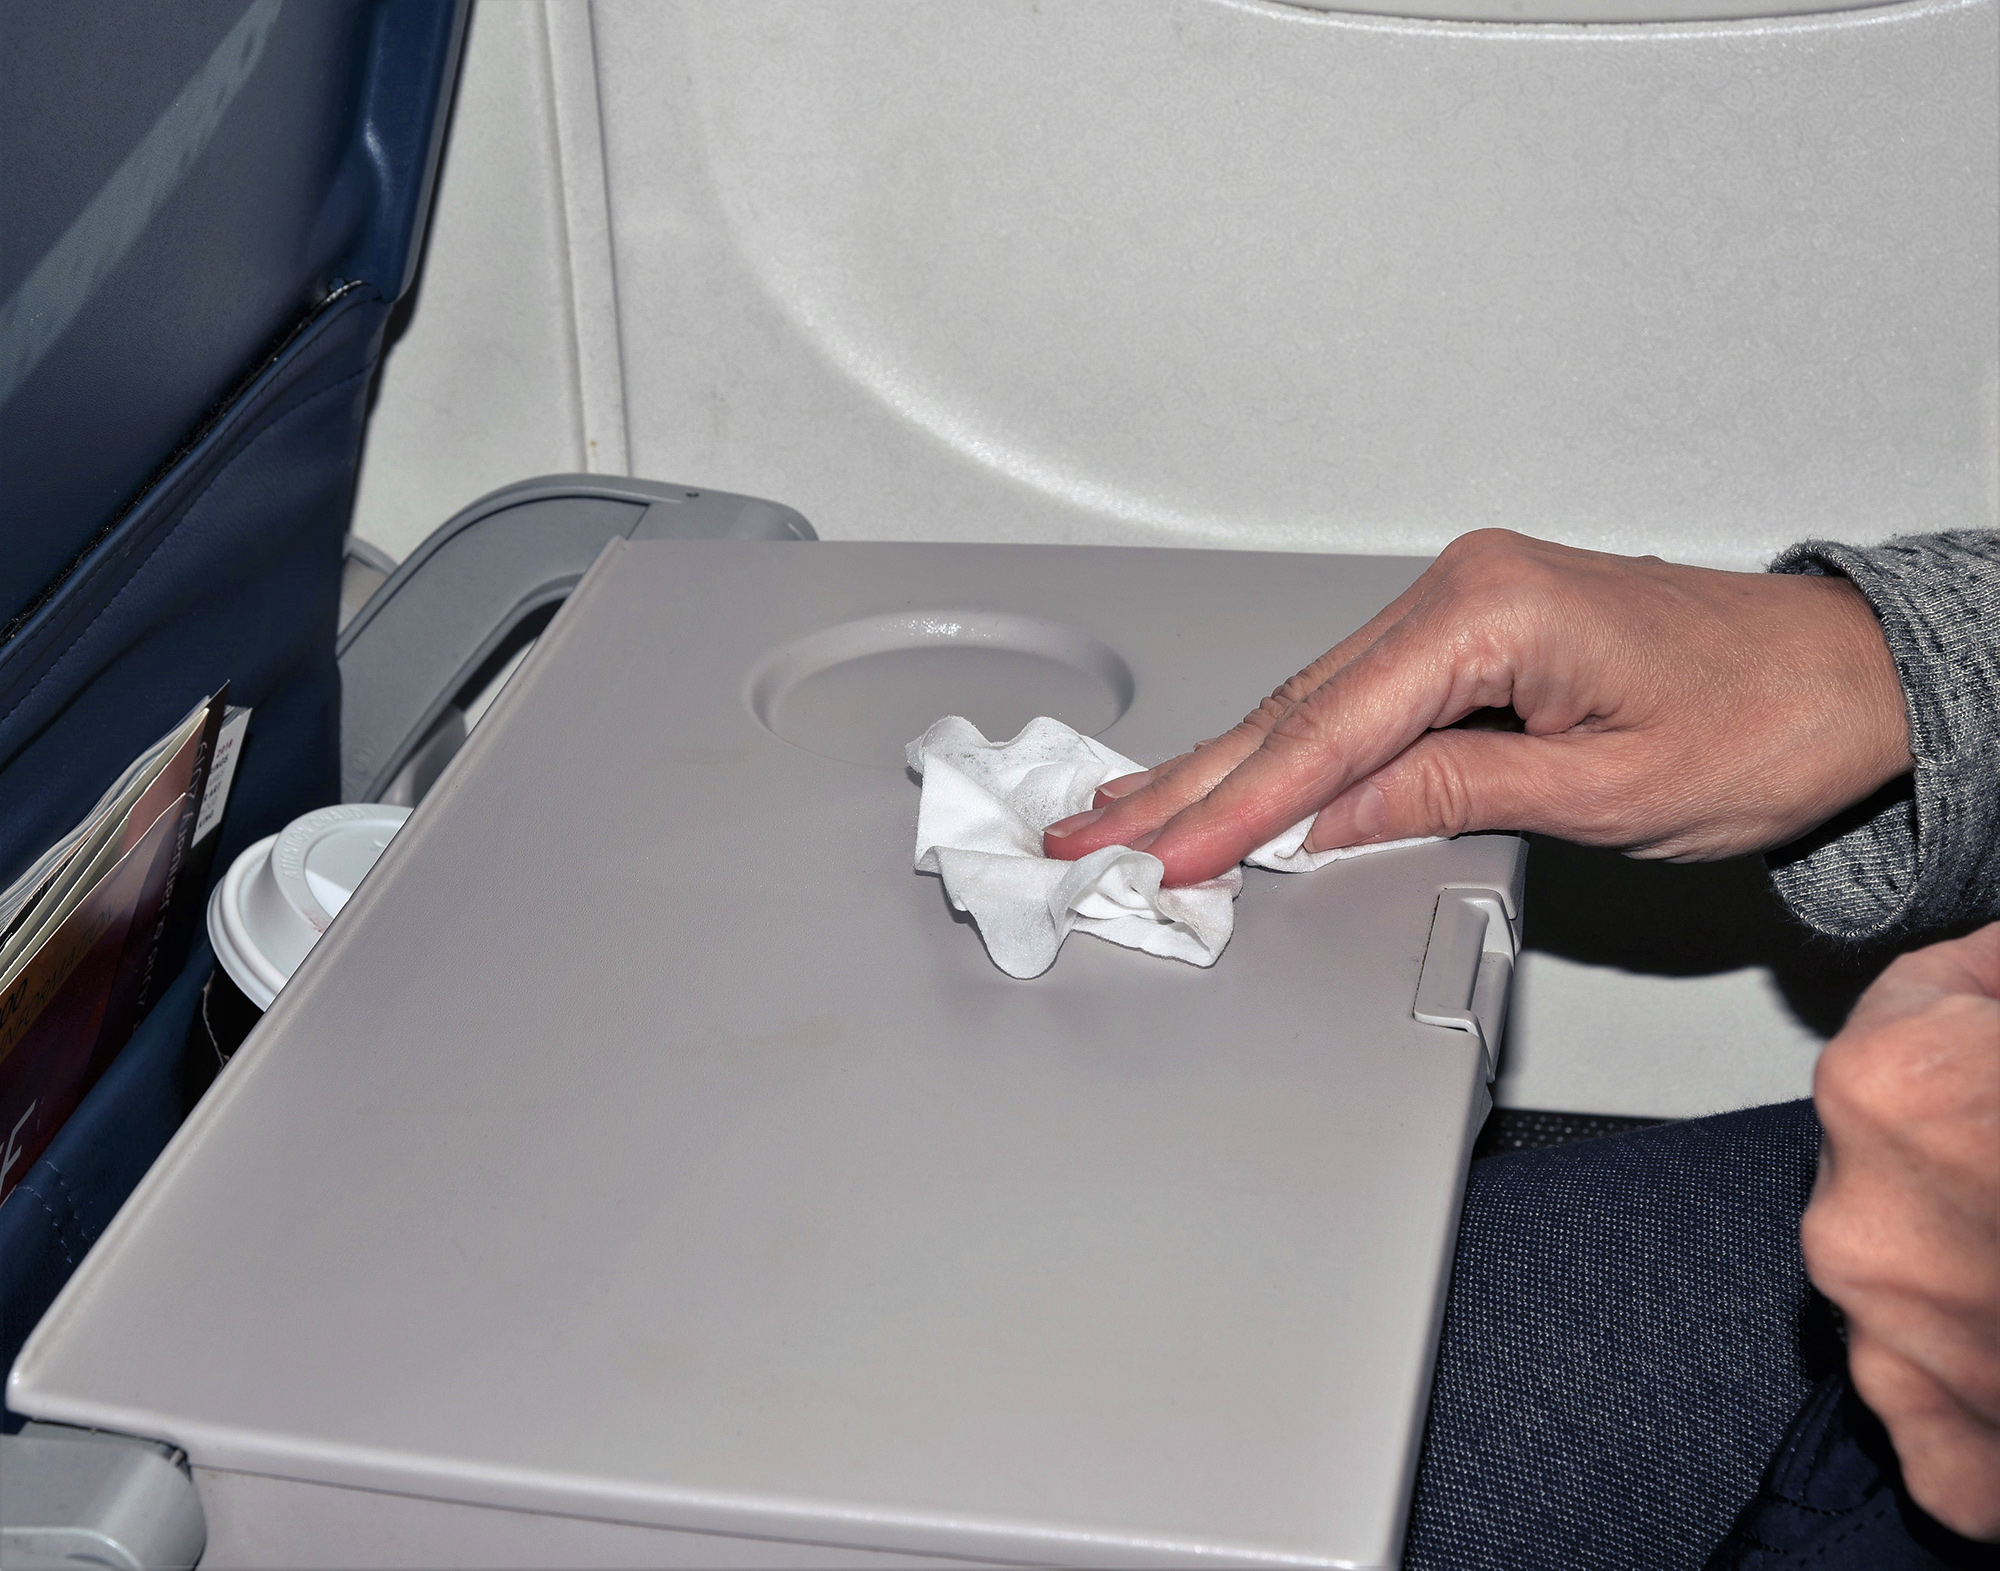 cleaning airplane tray